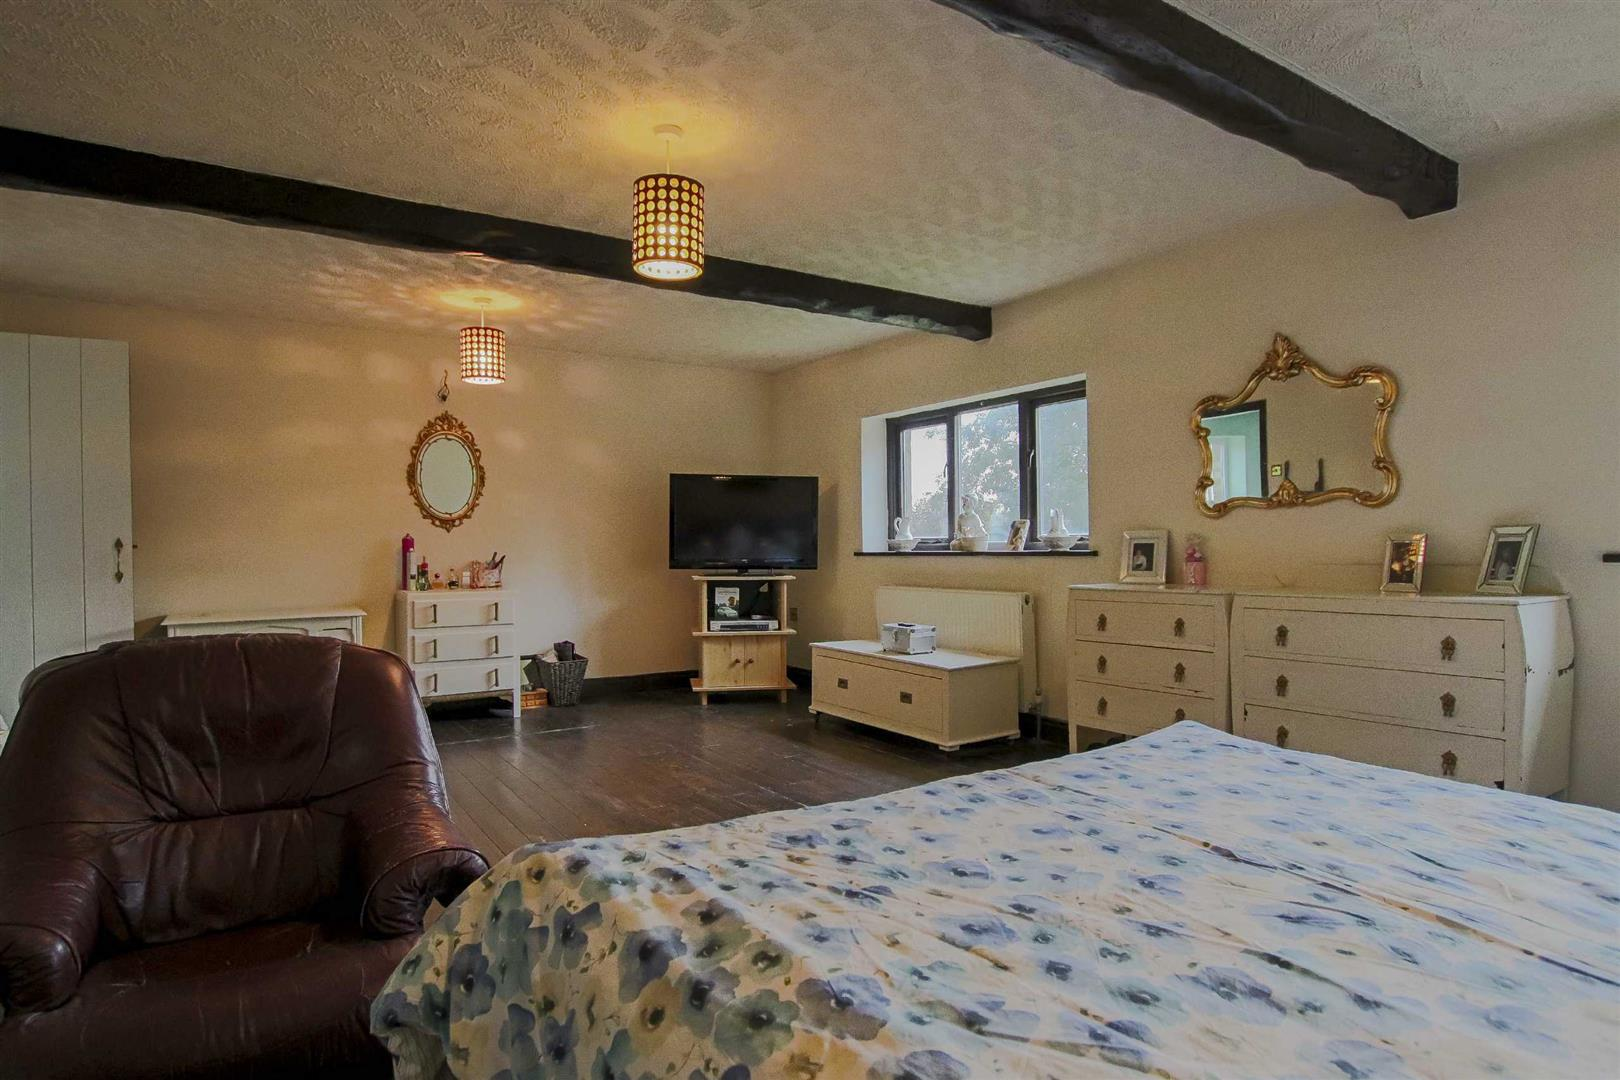 9 Bedroom Barn Conversion For Sale - Image 14